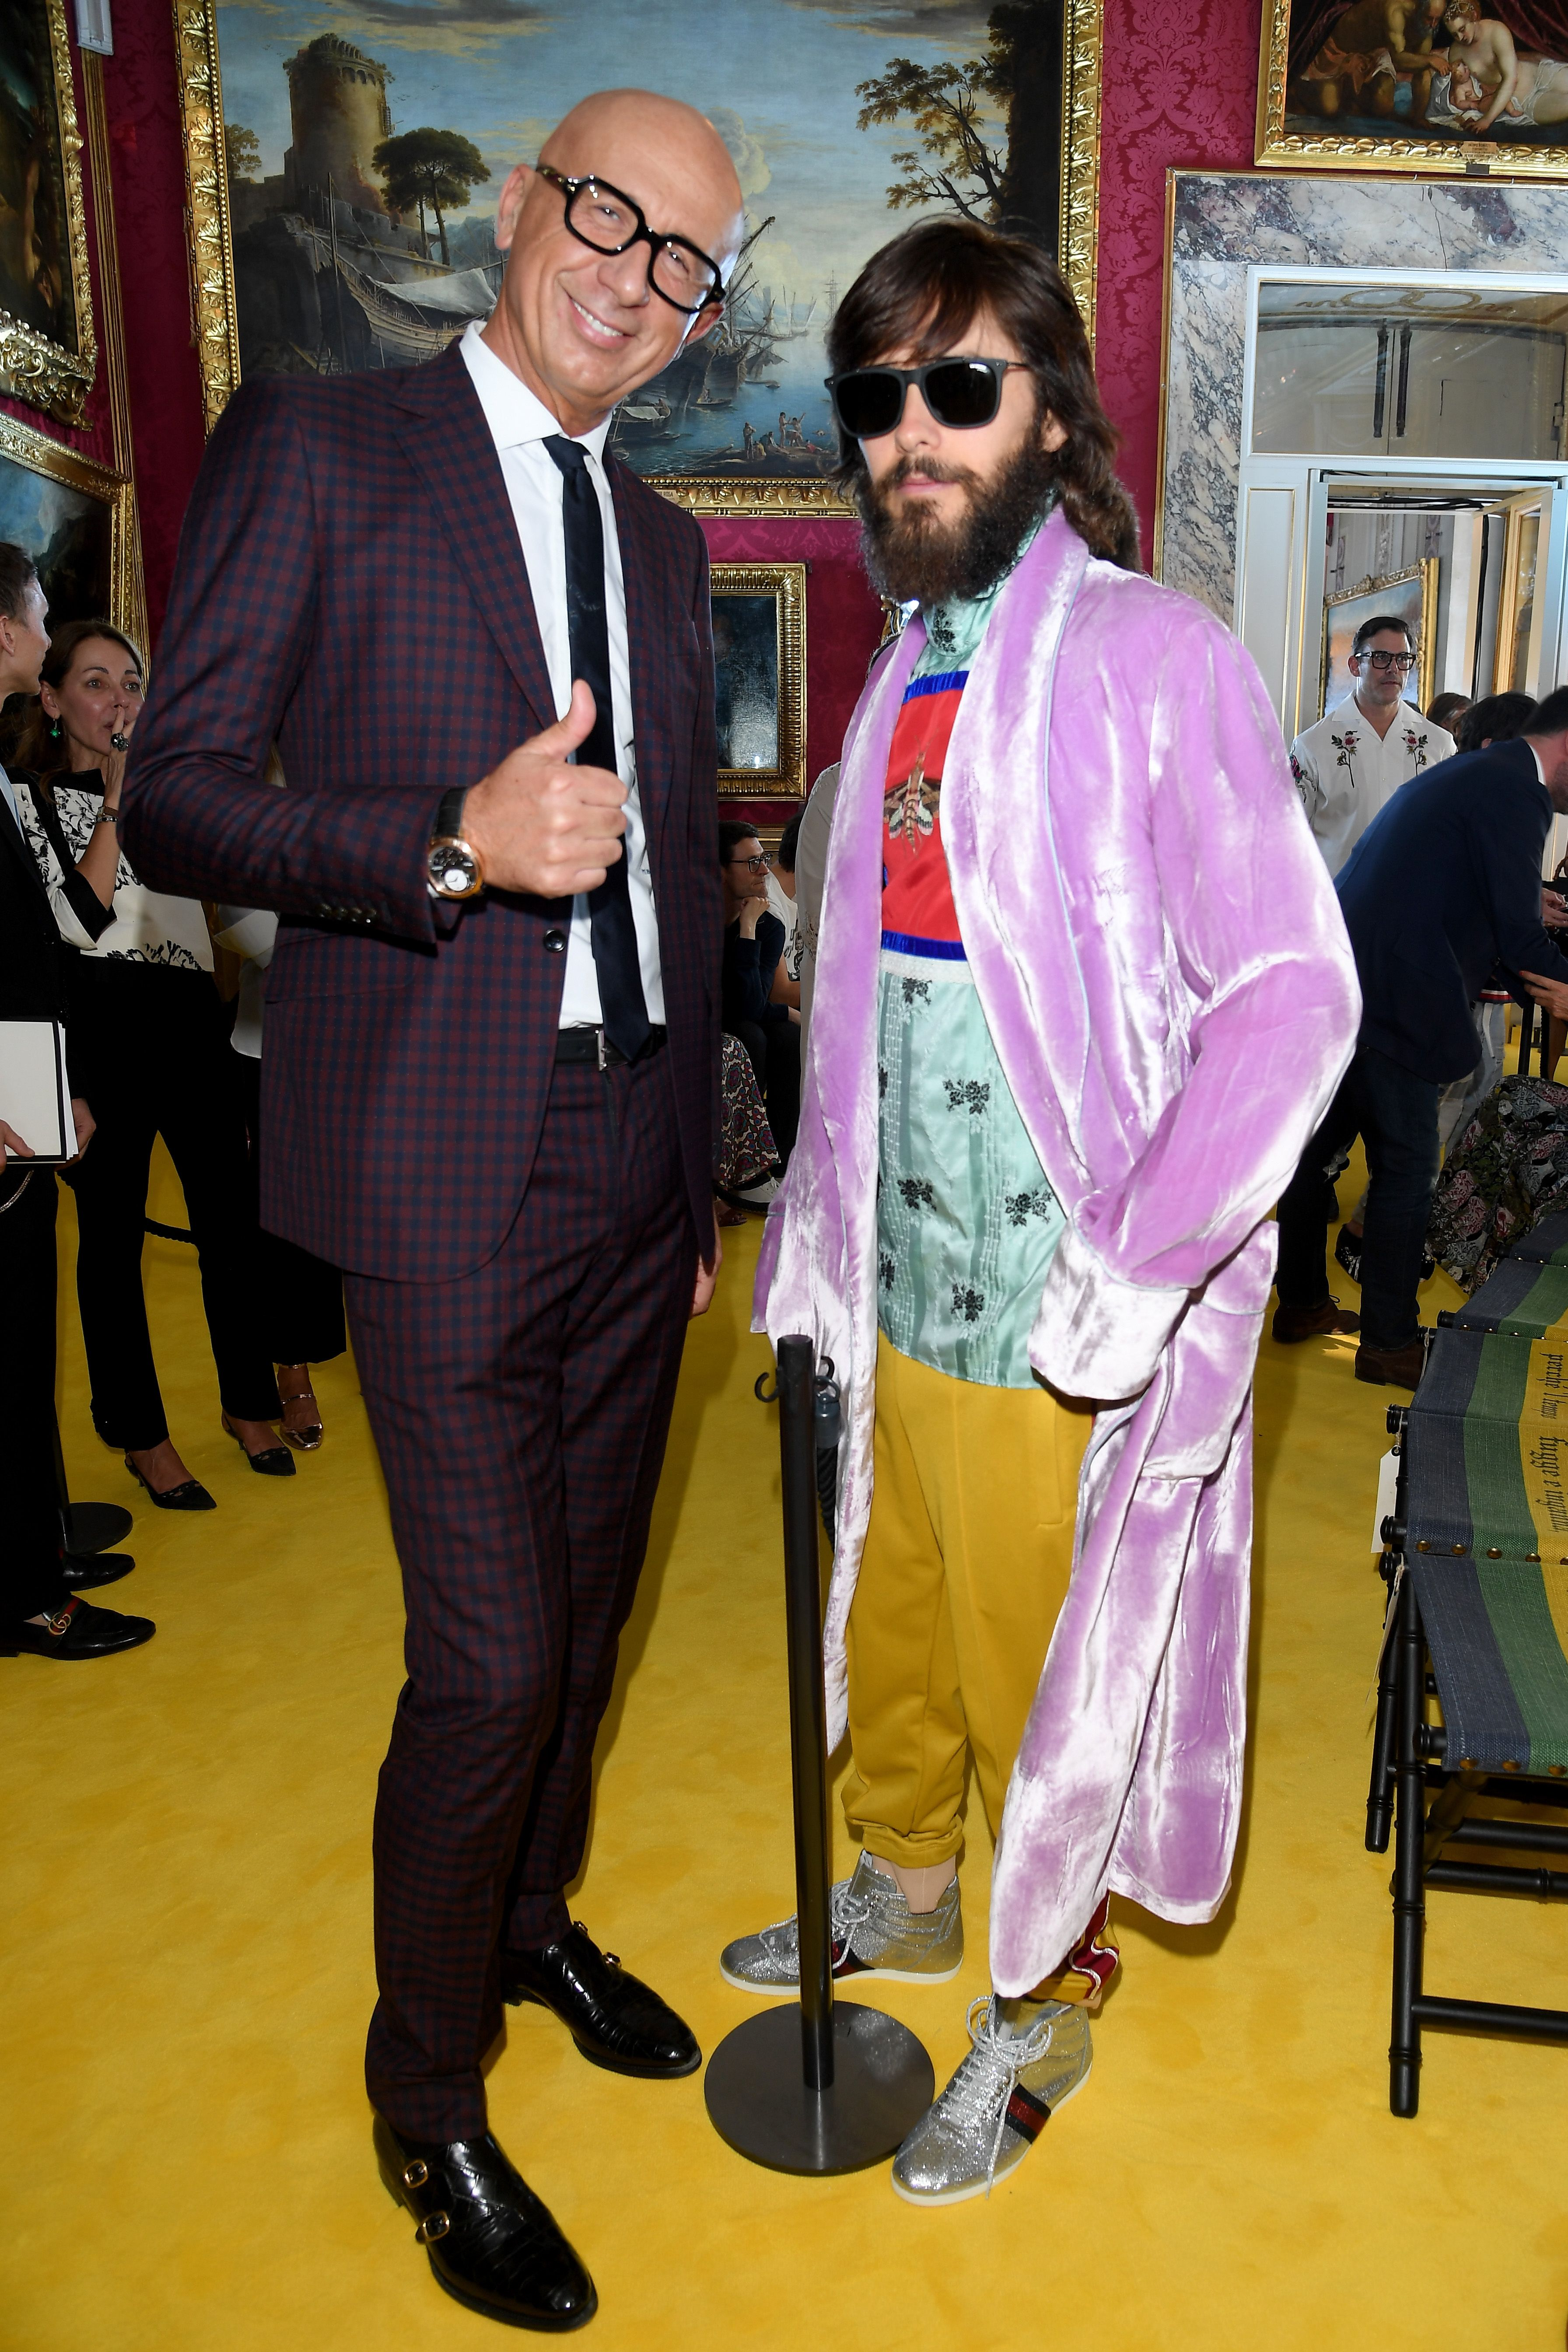 Gucci CEO Marco Bizzarri together with Jared Leto inside the Gucci ...